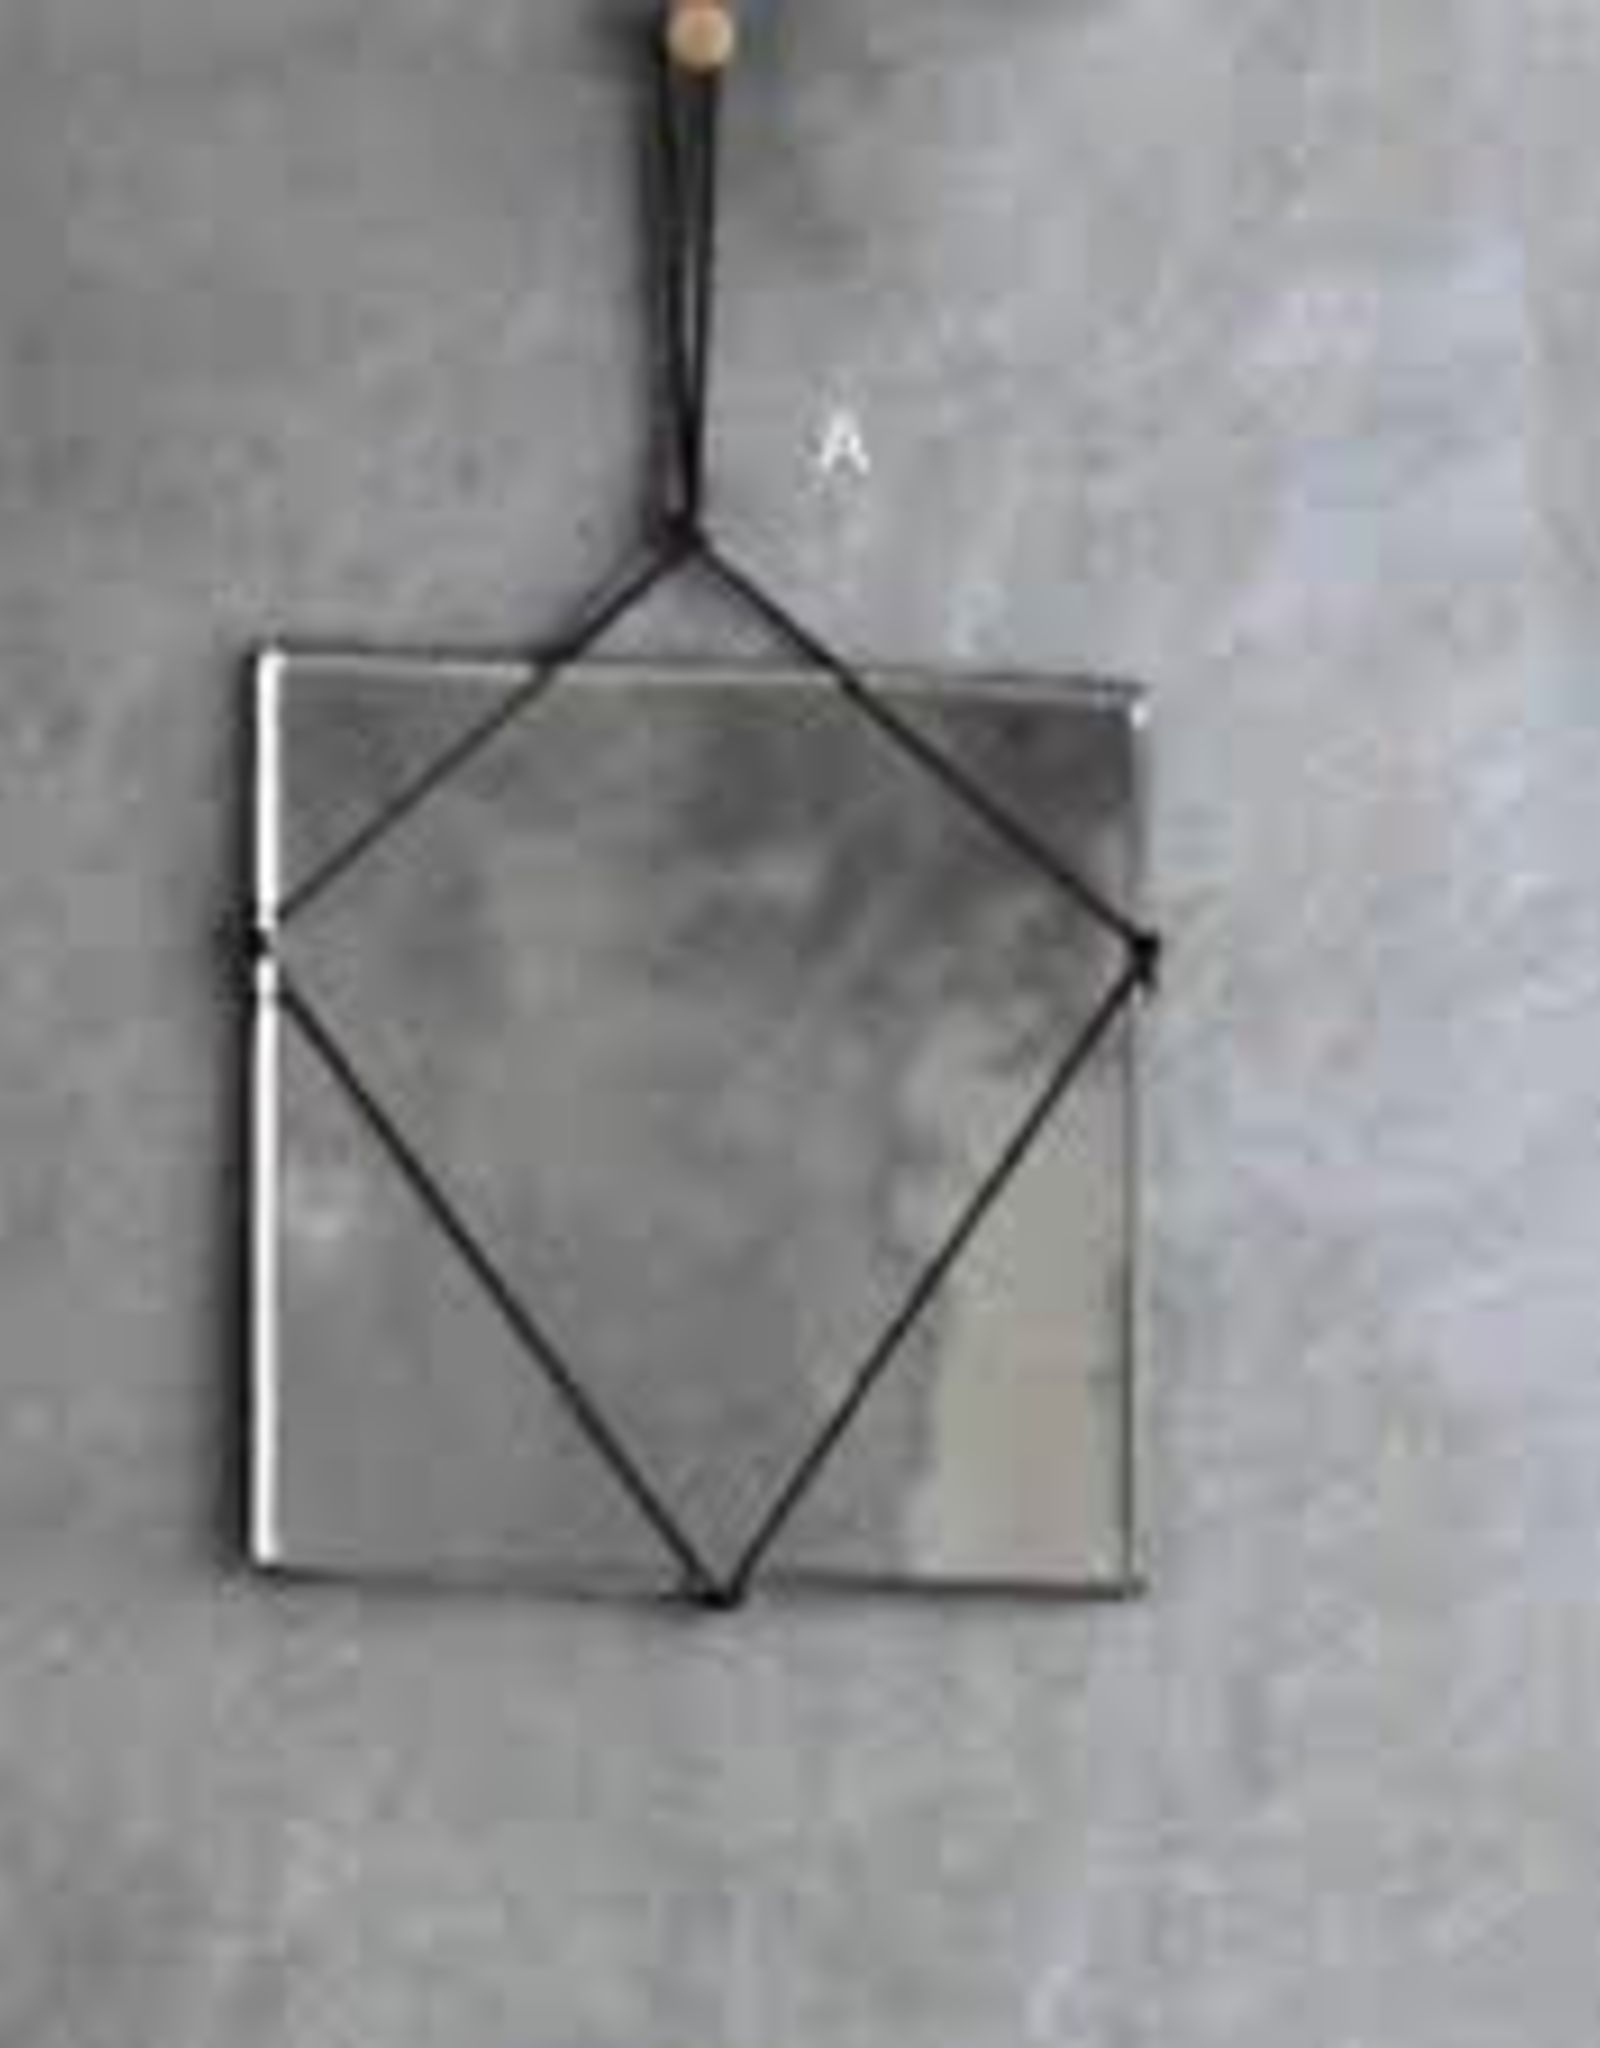 Frameless Square Mirror with Cord - Reg $99 Now $49